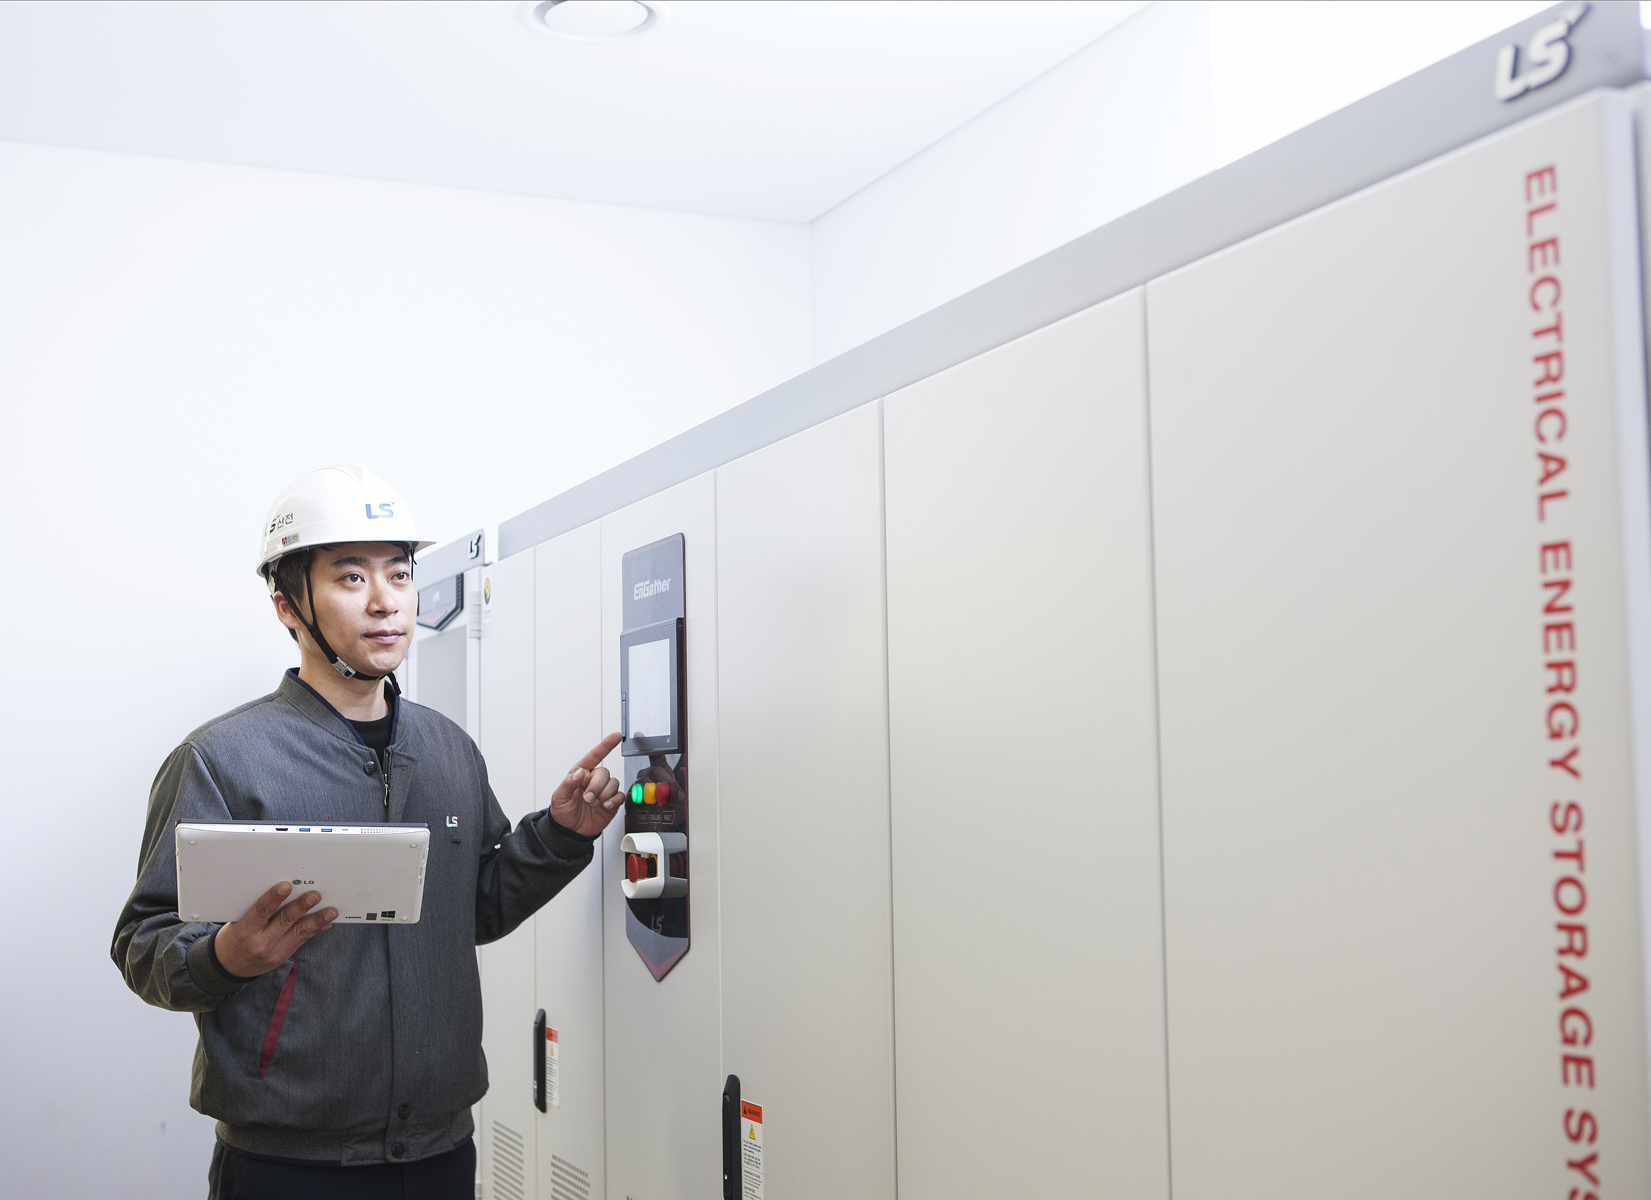 An LSIS employee inspects a power conditioning system (PCS) at a manufacturing facility